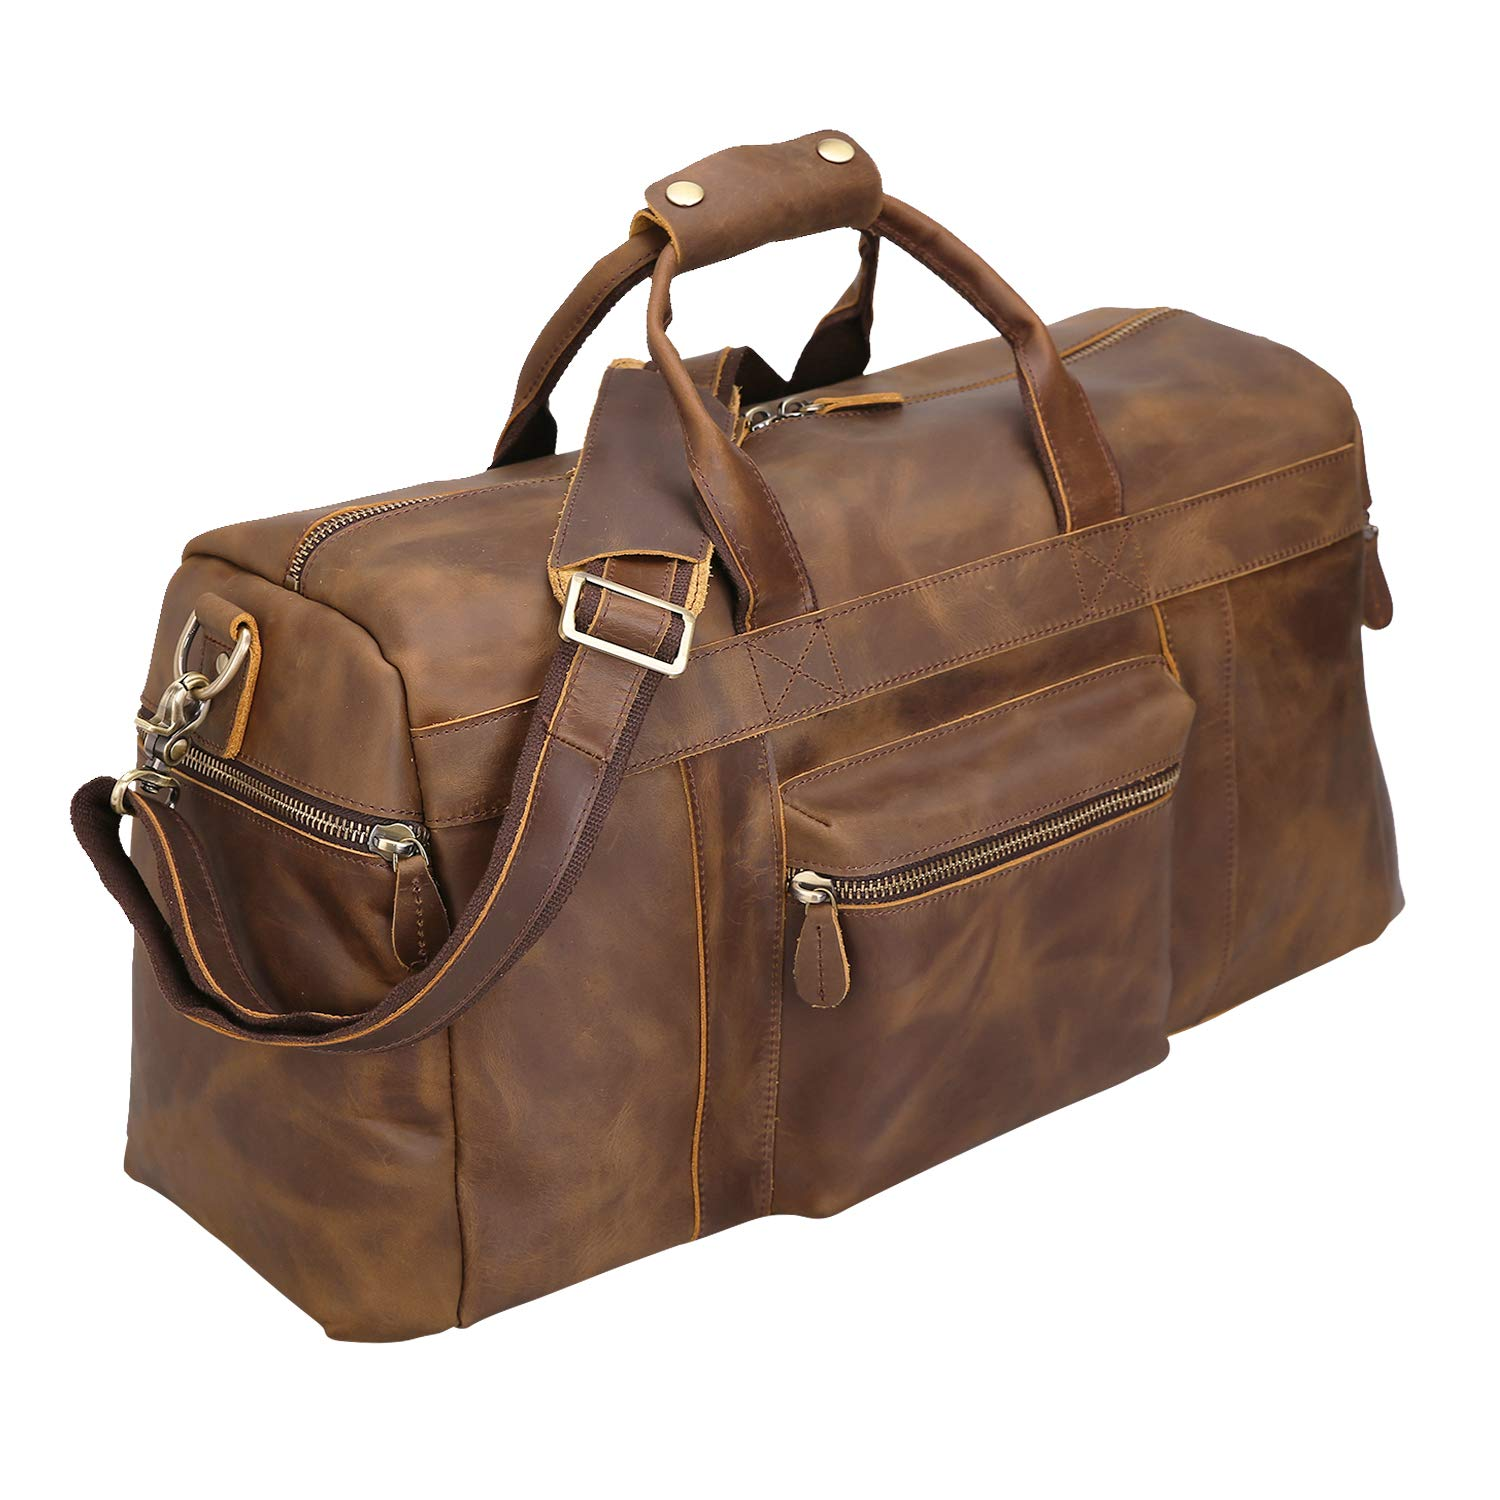 79d2bedfb8d5 Polare 25'' Duffle Genuine Leather Weekender Travel Duffel luggage Bag with  YKK Zipper